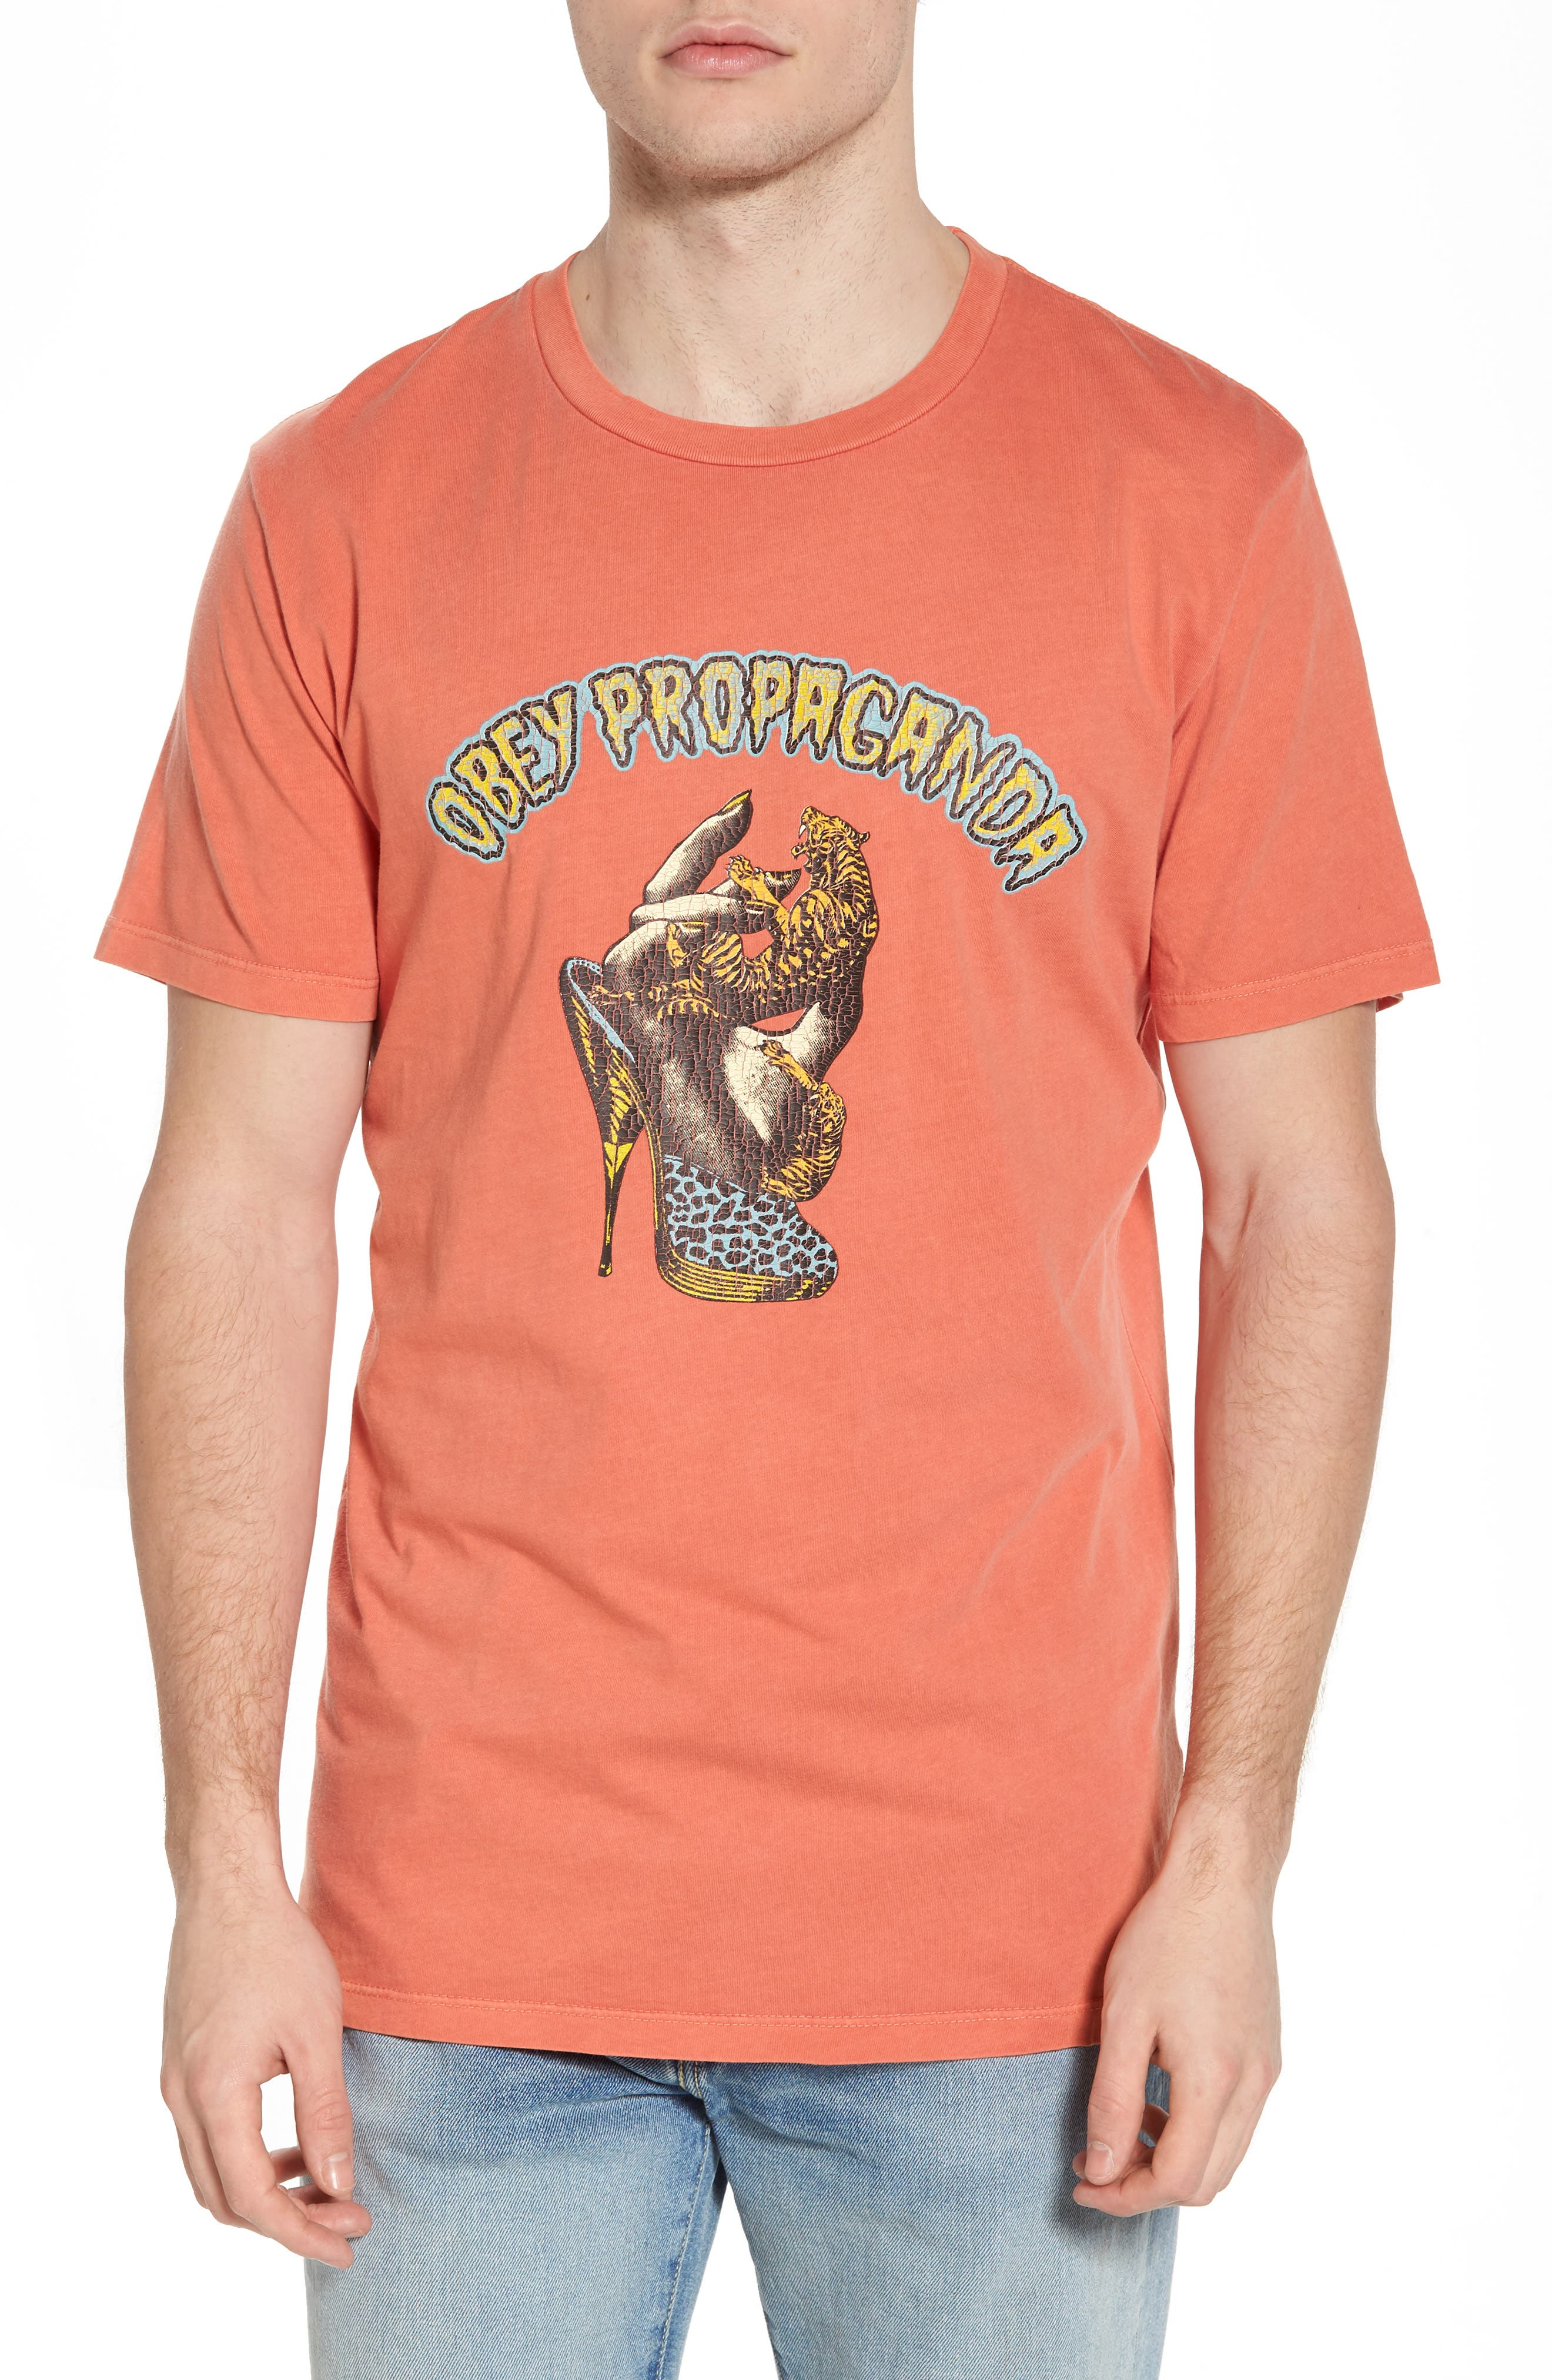 Dominance Graphic T-Shirt,                         Main,                         color, Dusty Paprika